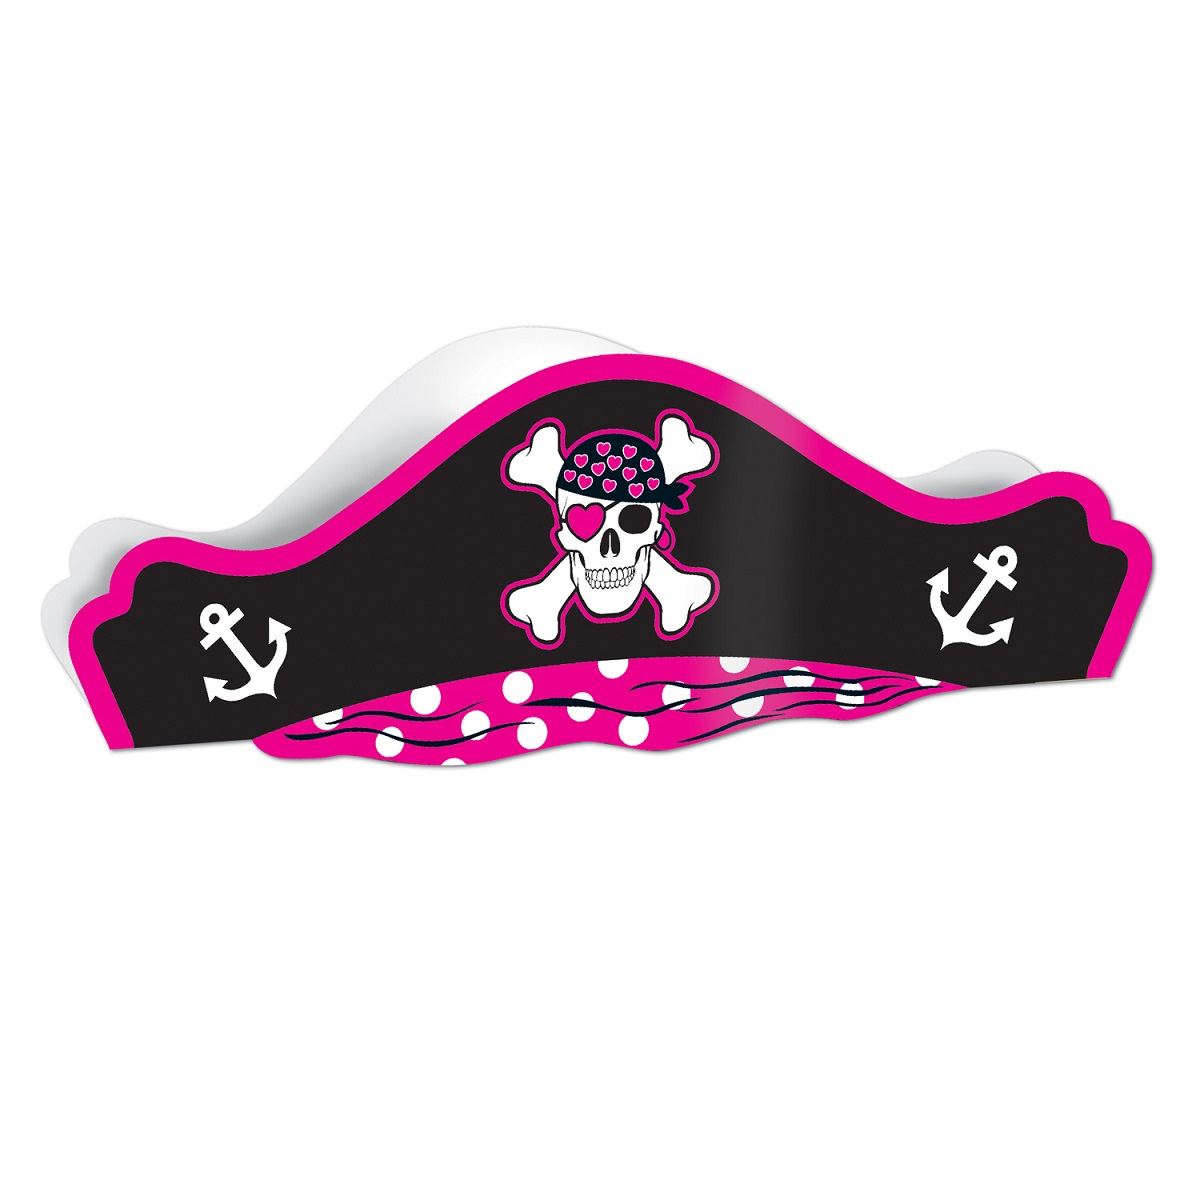 Club Pack of 48 Pink, Black and White Printed Pirate Hat Costume Accessories